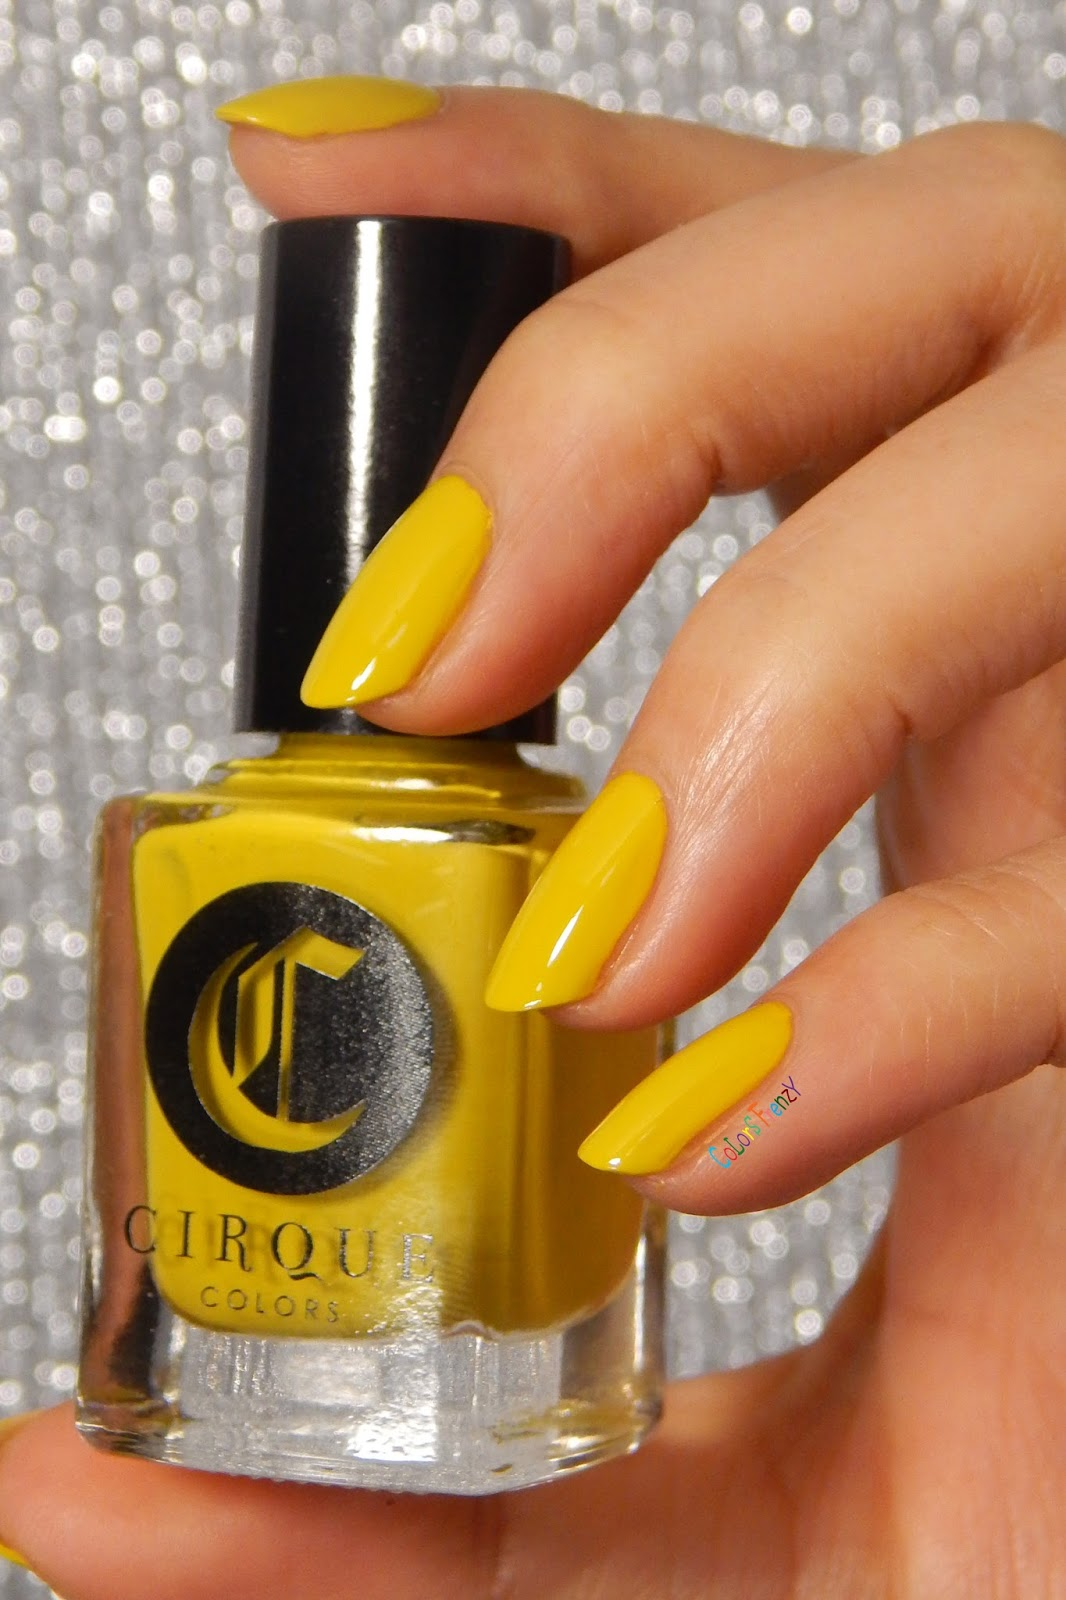 cirque-colors-hustle